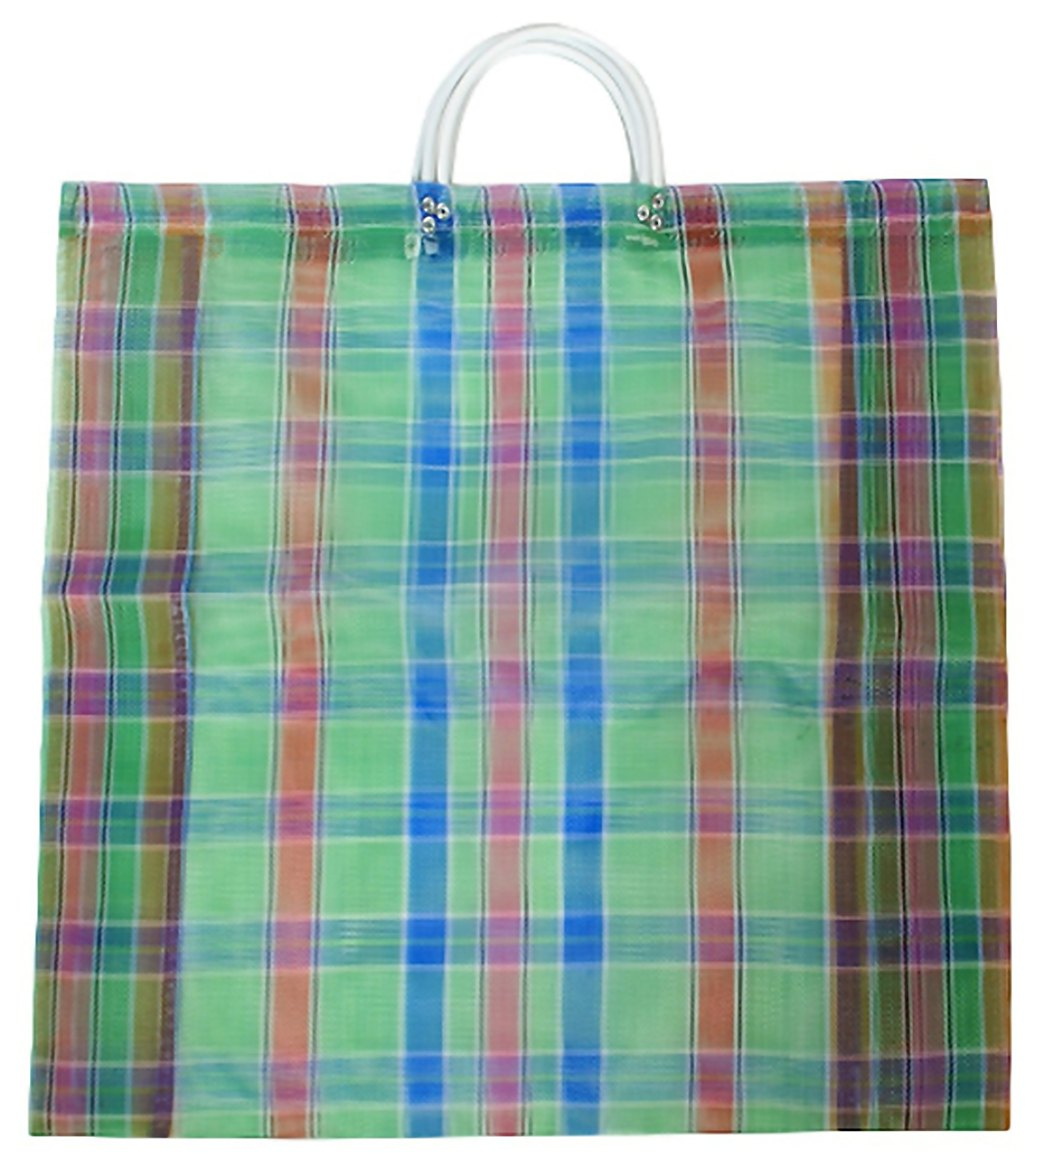 Wet Products Beach Bag Nylon Tote Beach Bag at SwimOutlet.com